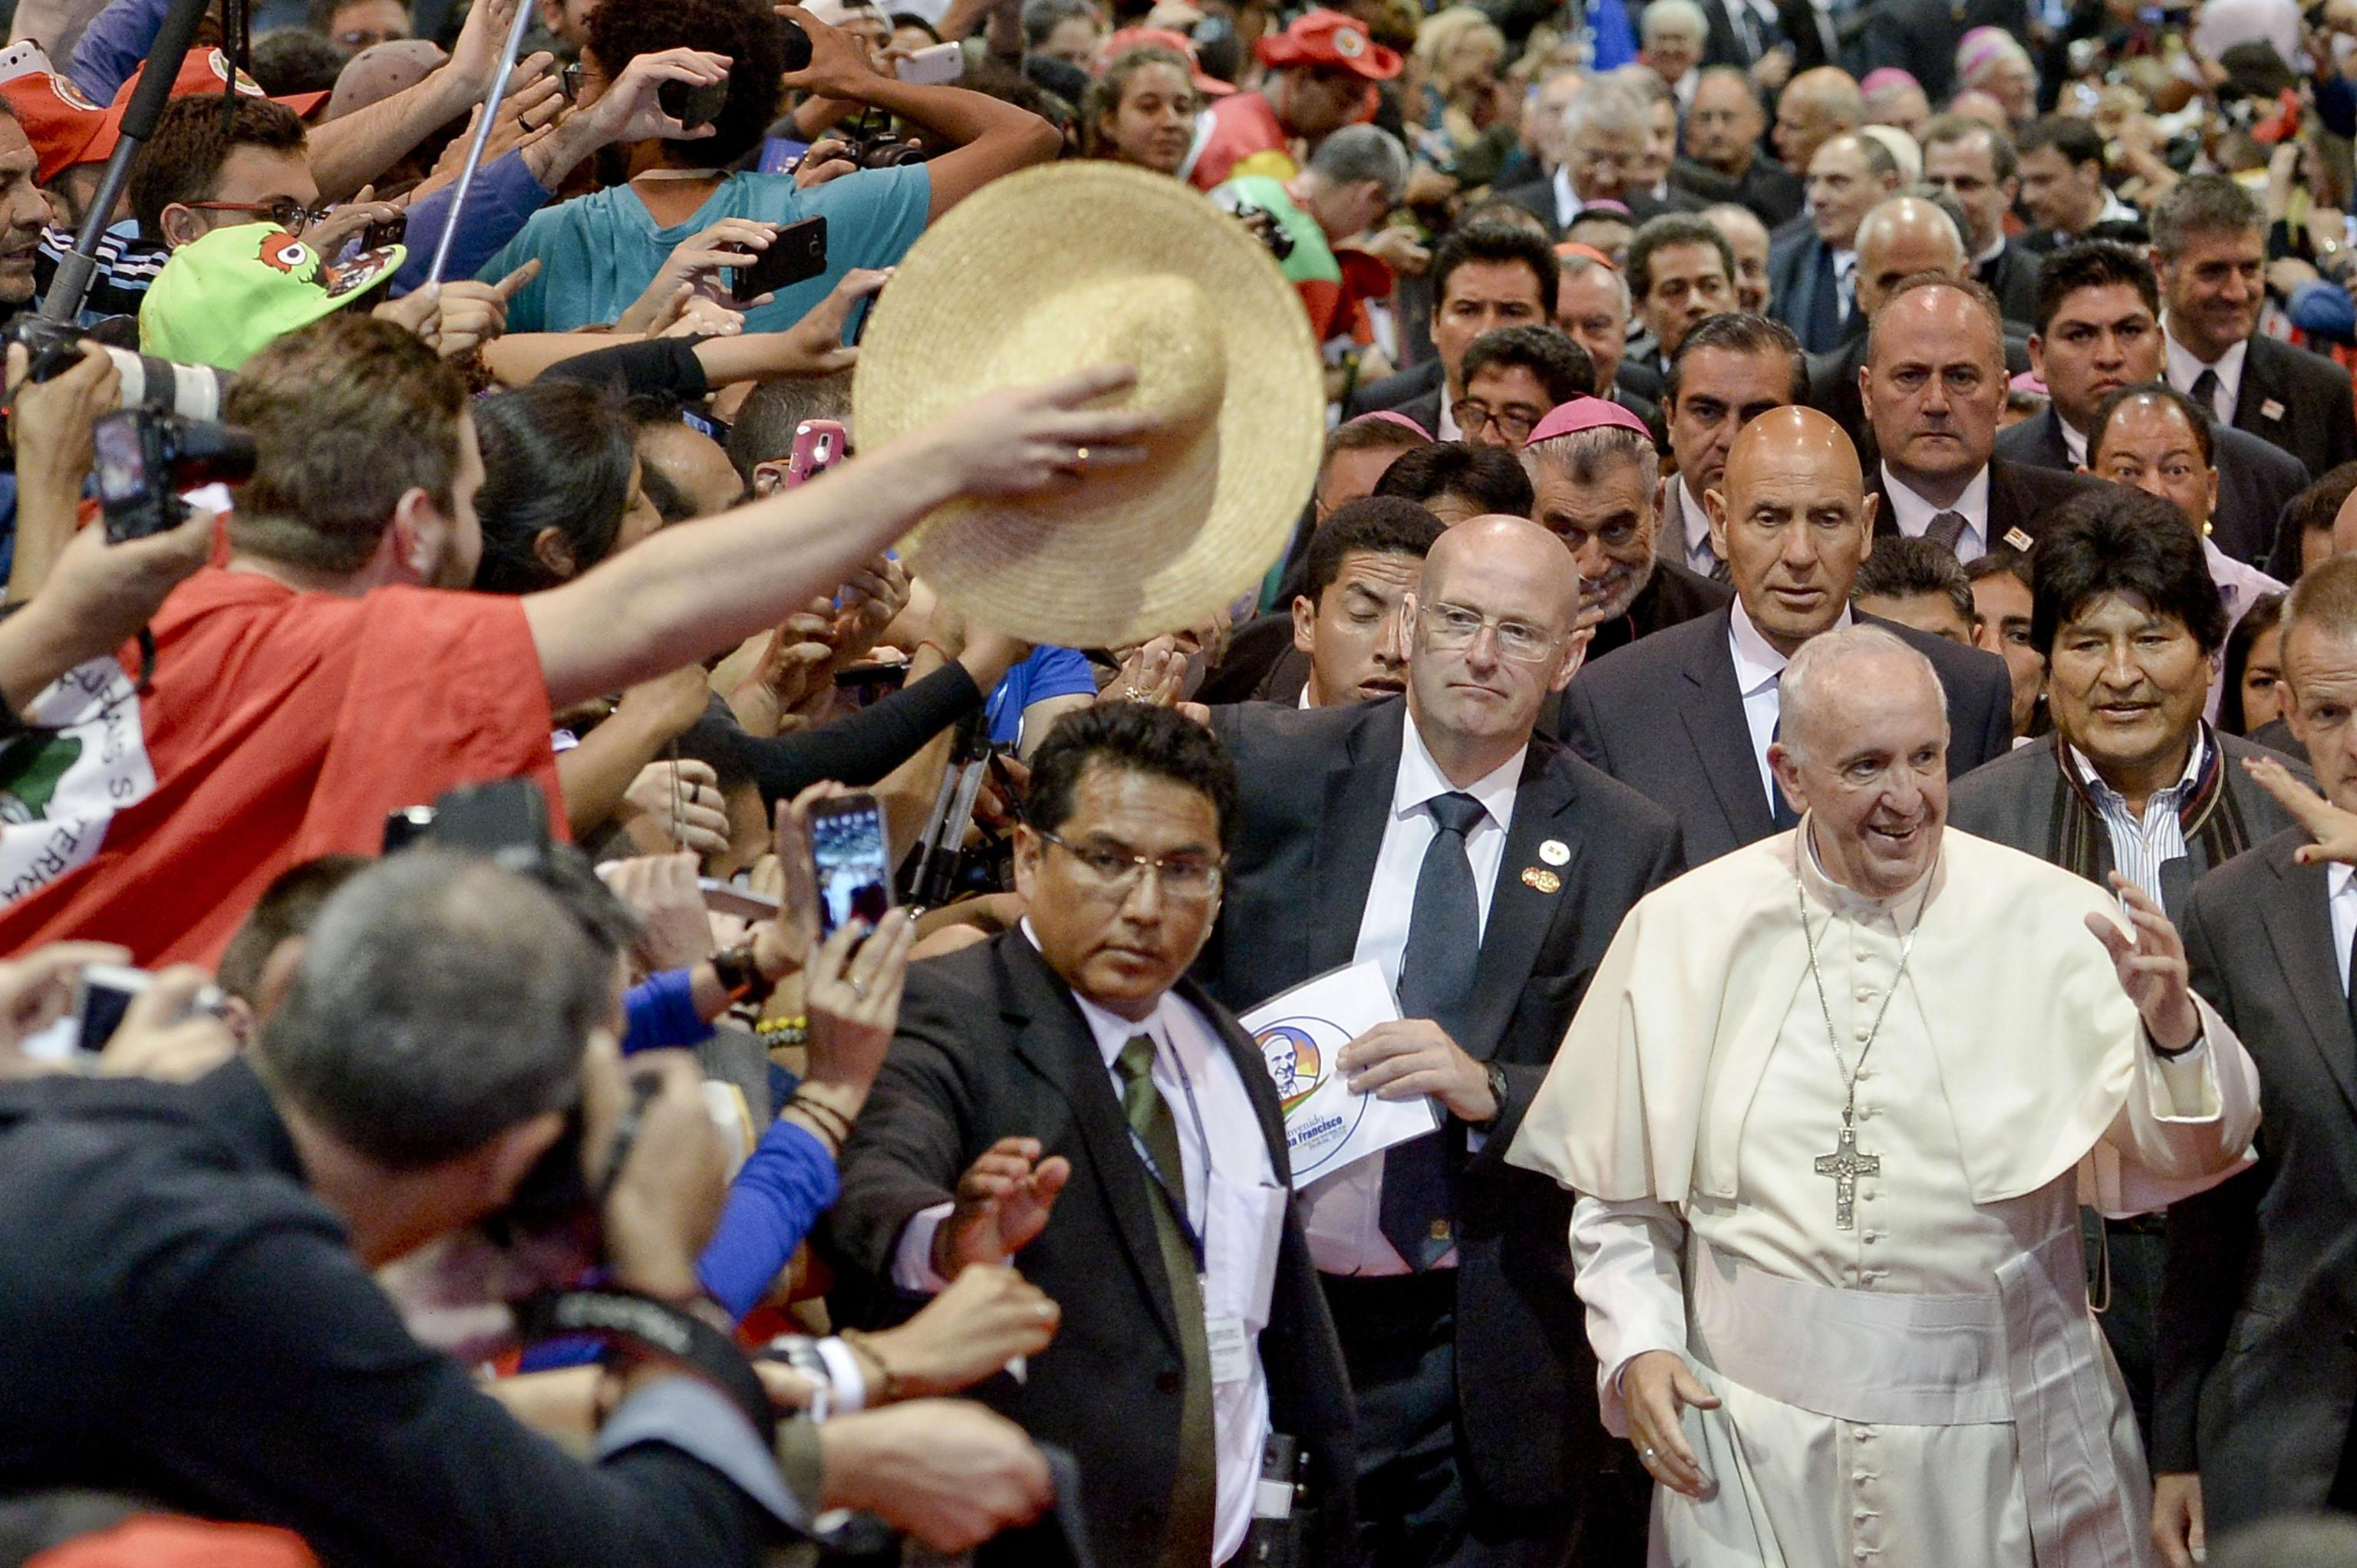 Pope Francis arrives at the second World Meeting of Popular Movements in Santa Cruz